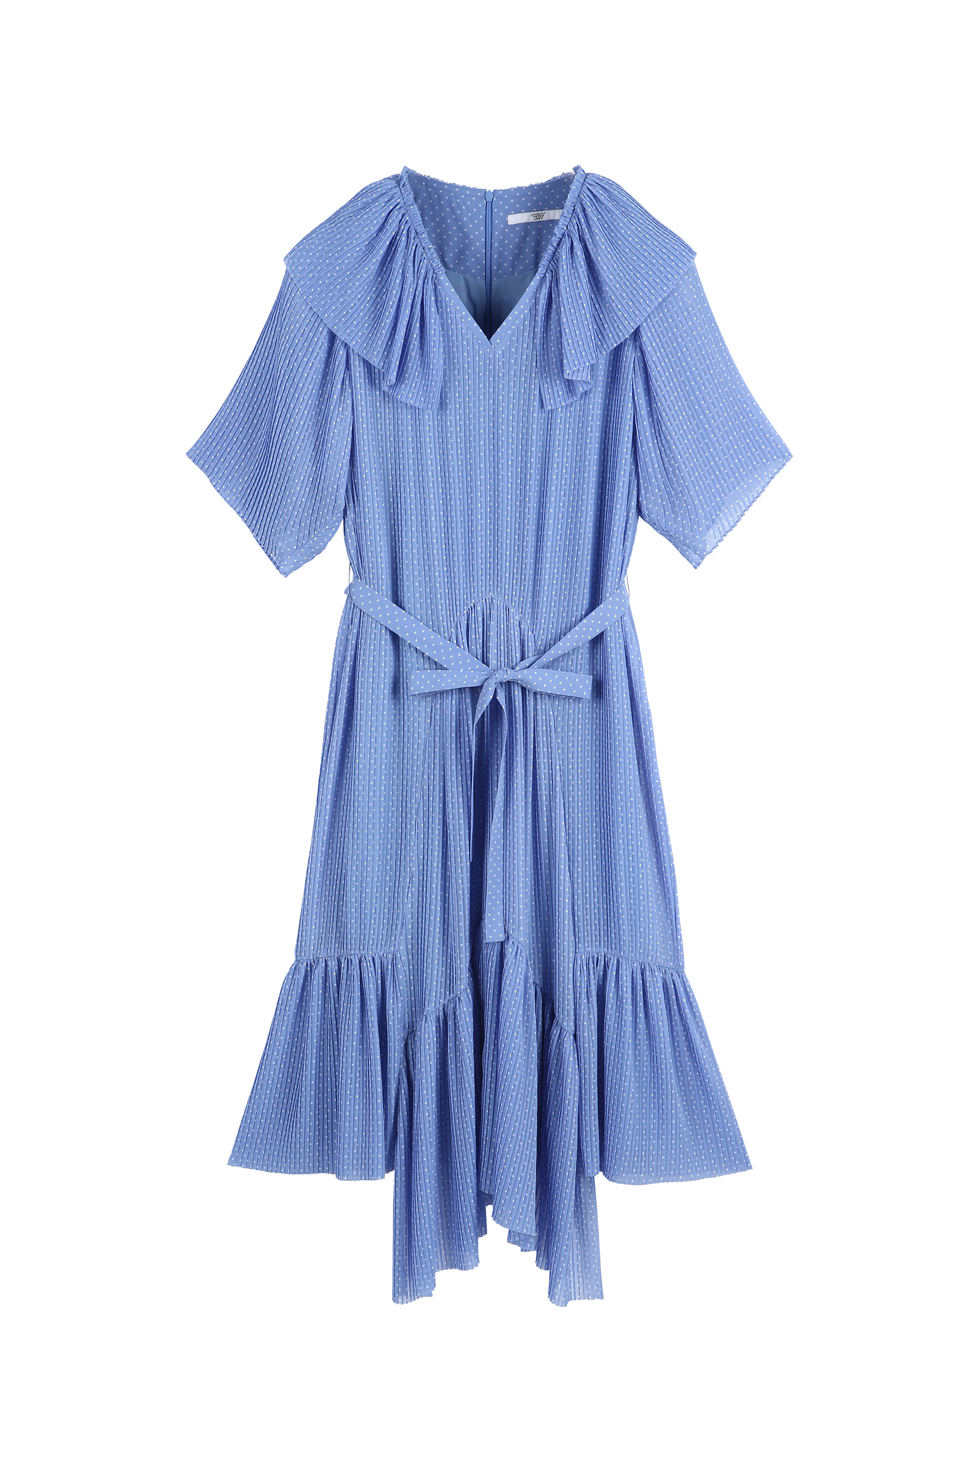 UNBALANCED PLEATS DRESS - BLUE